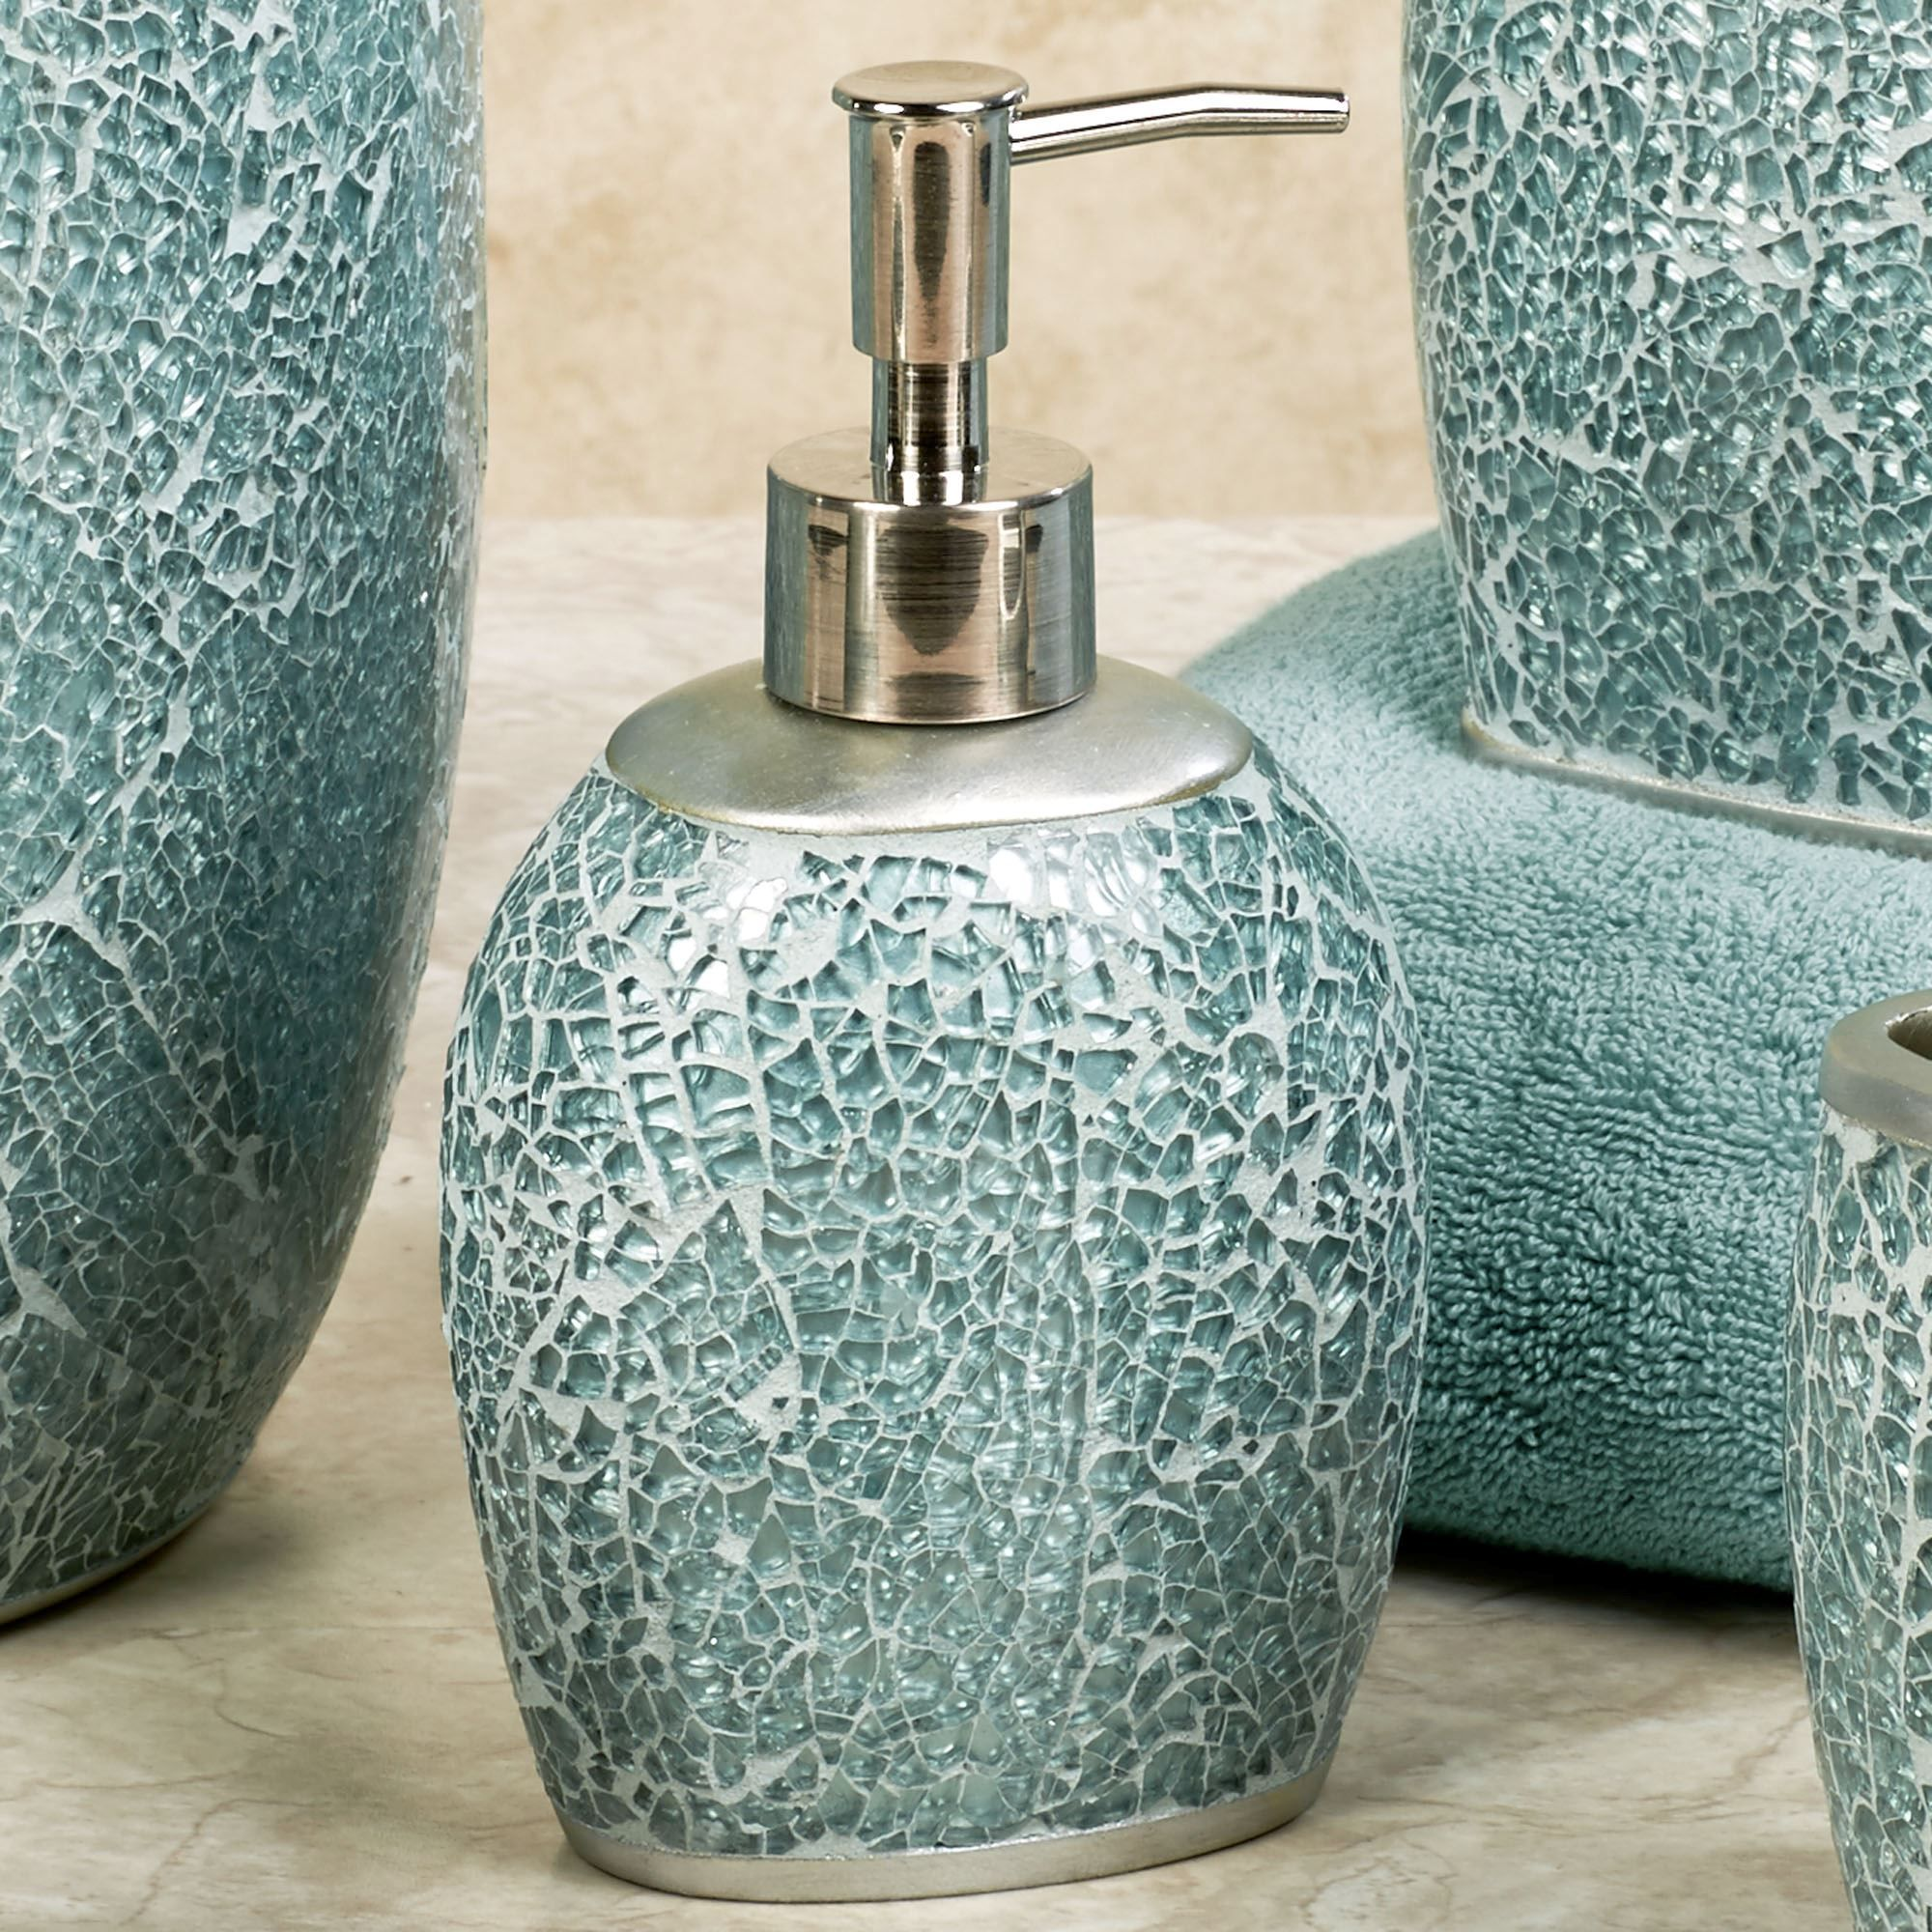 calm waters light aqua mosaic bath accessories | posts, soaps and